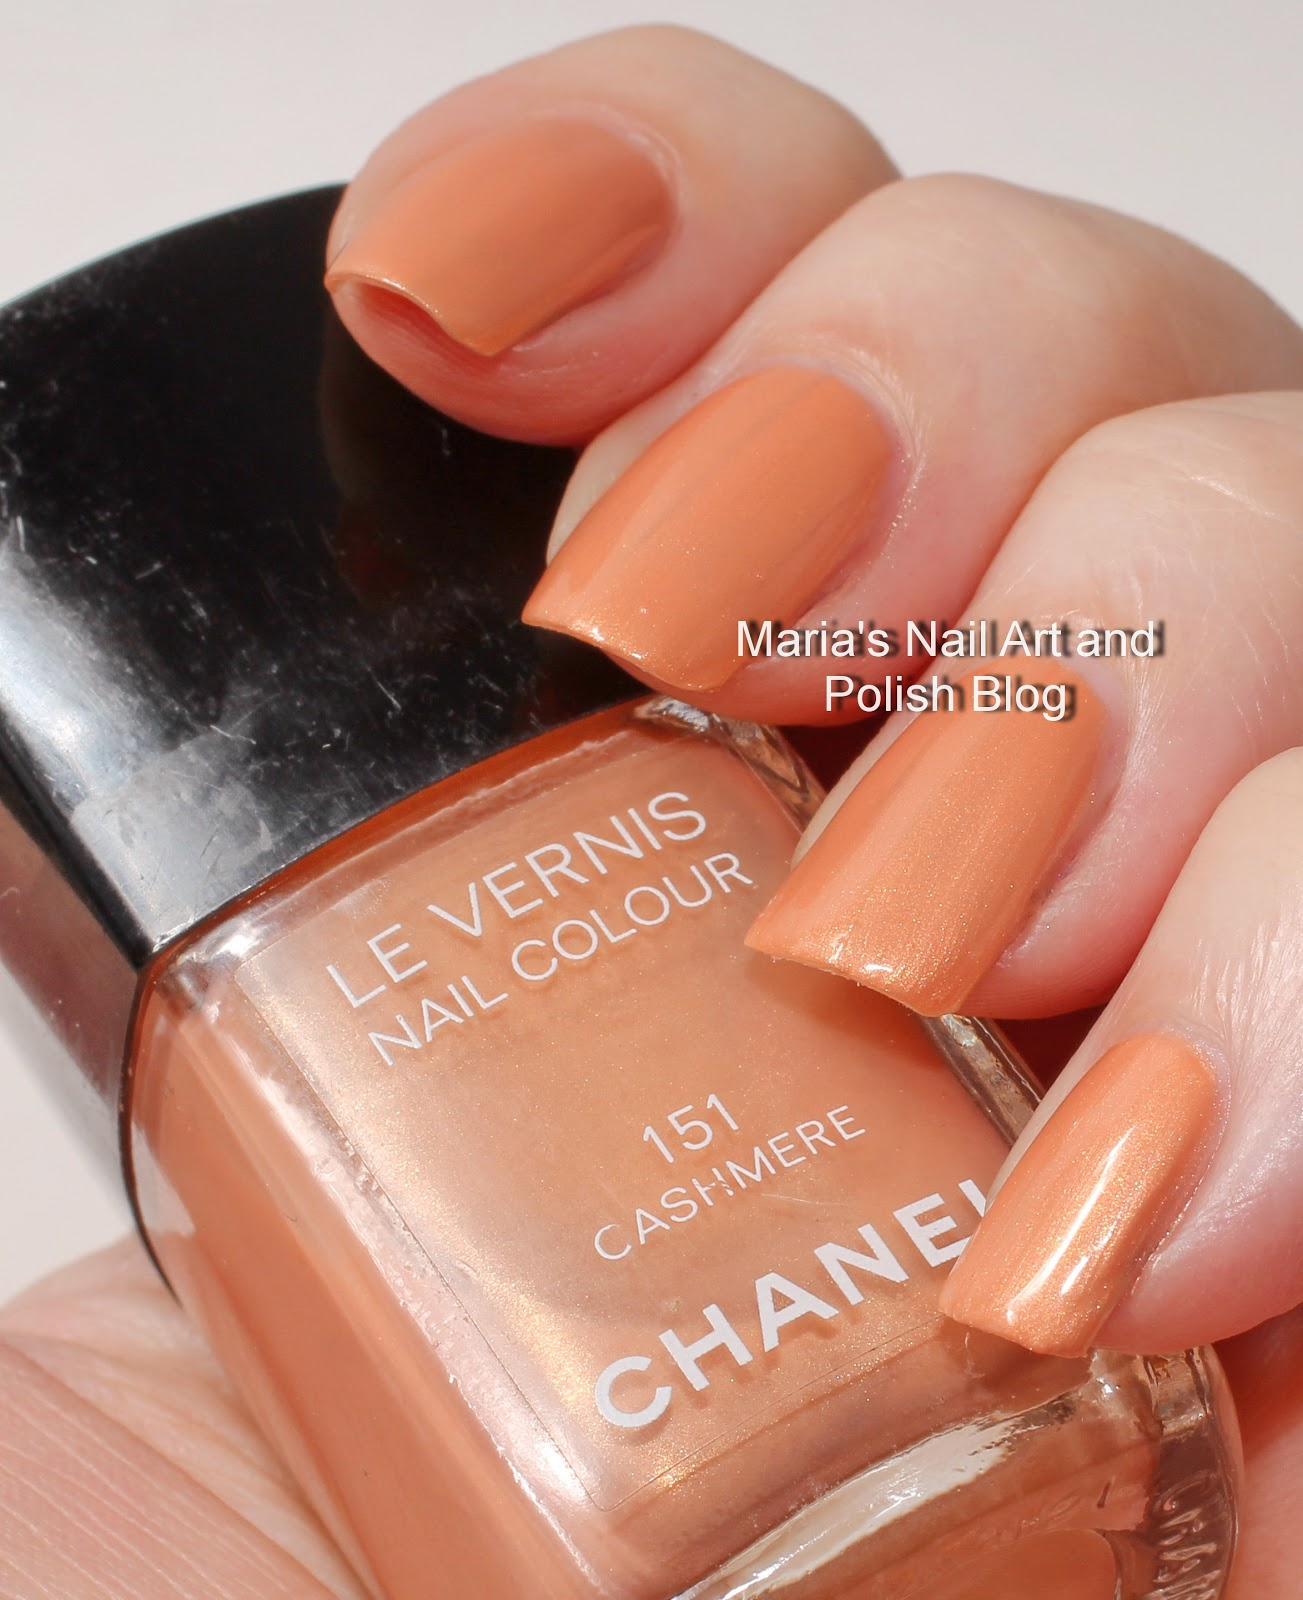 Marias Nail Art and Polish Blog: Chanel Cashmere 151 swatches